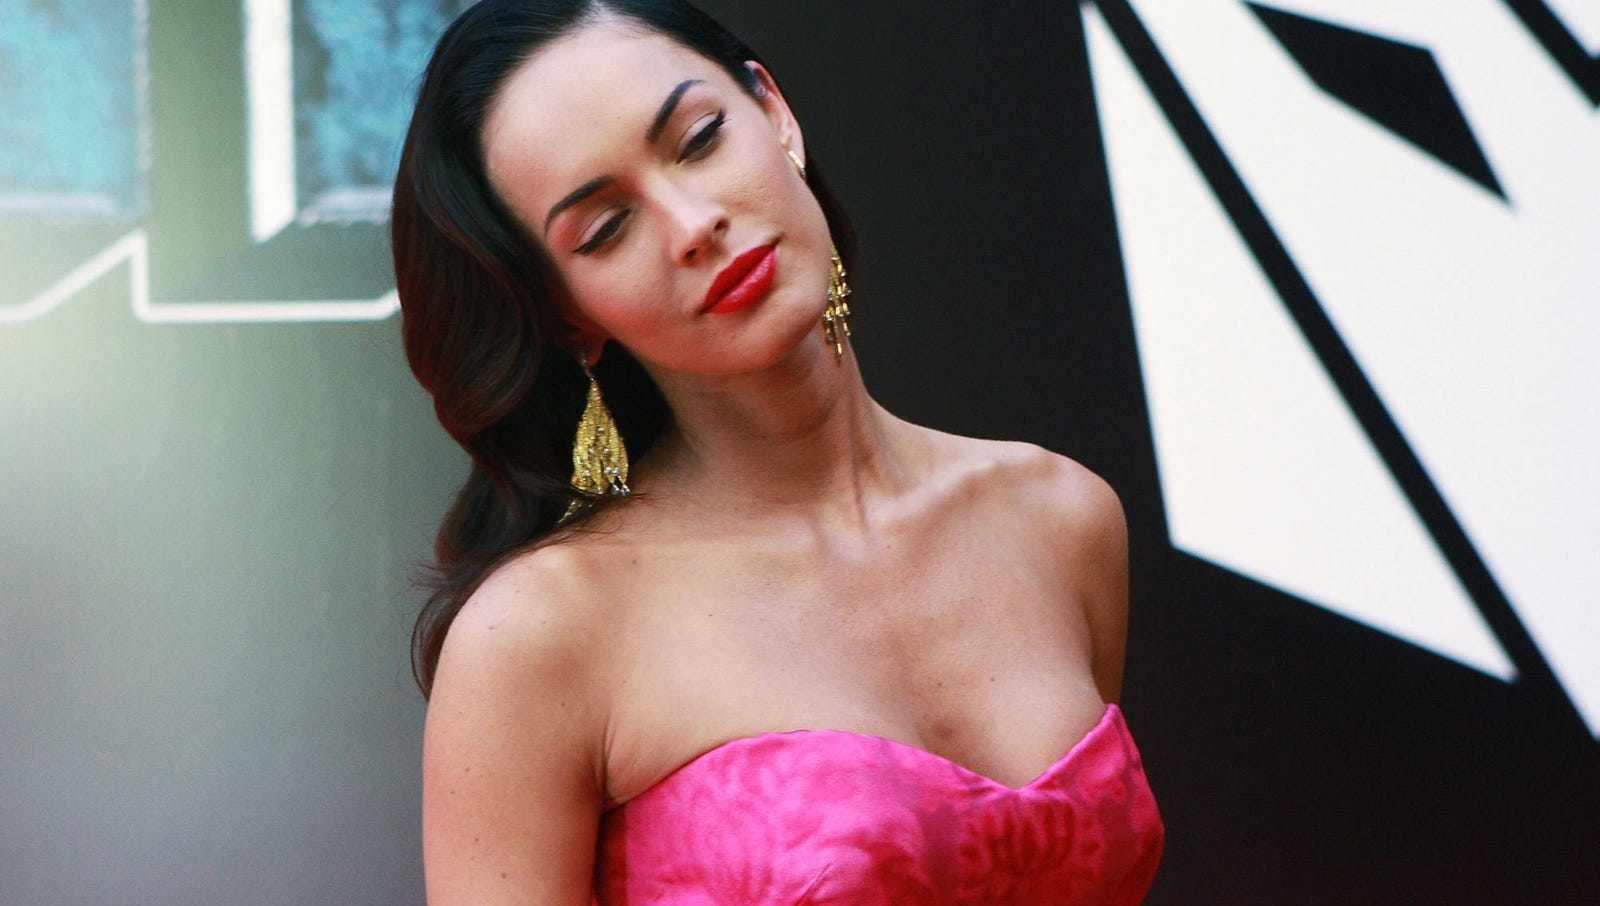 When it comes to pip blips, Megan Fox takes the cake. Case in point.